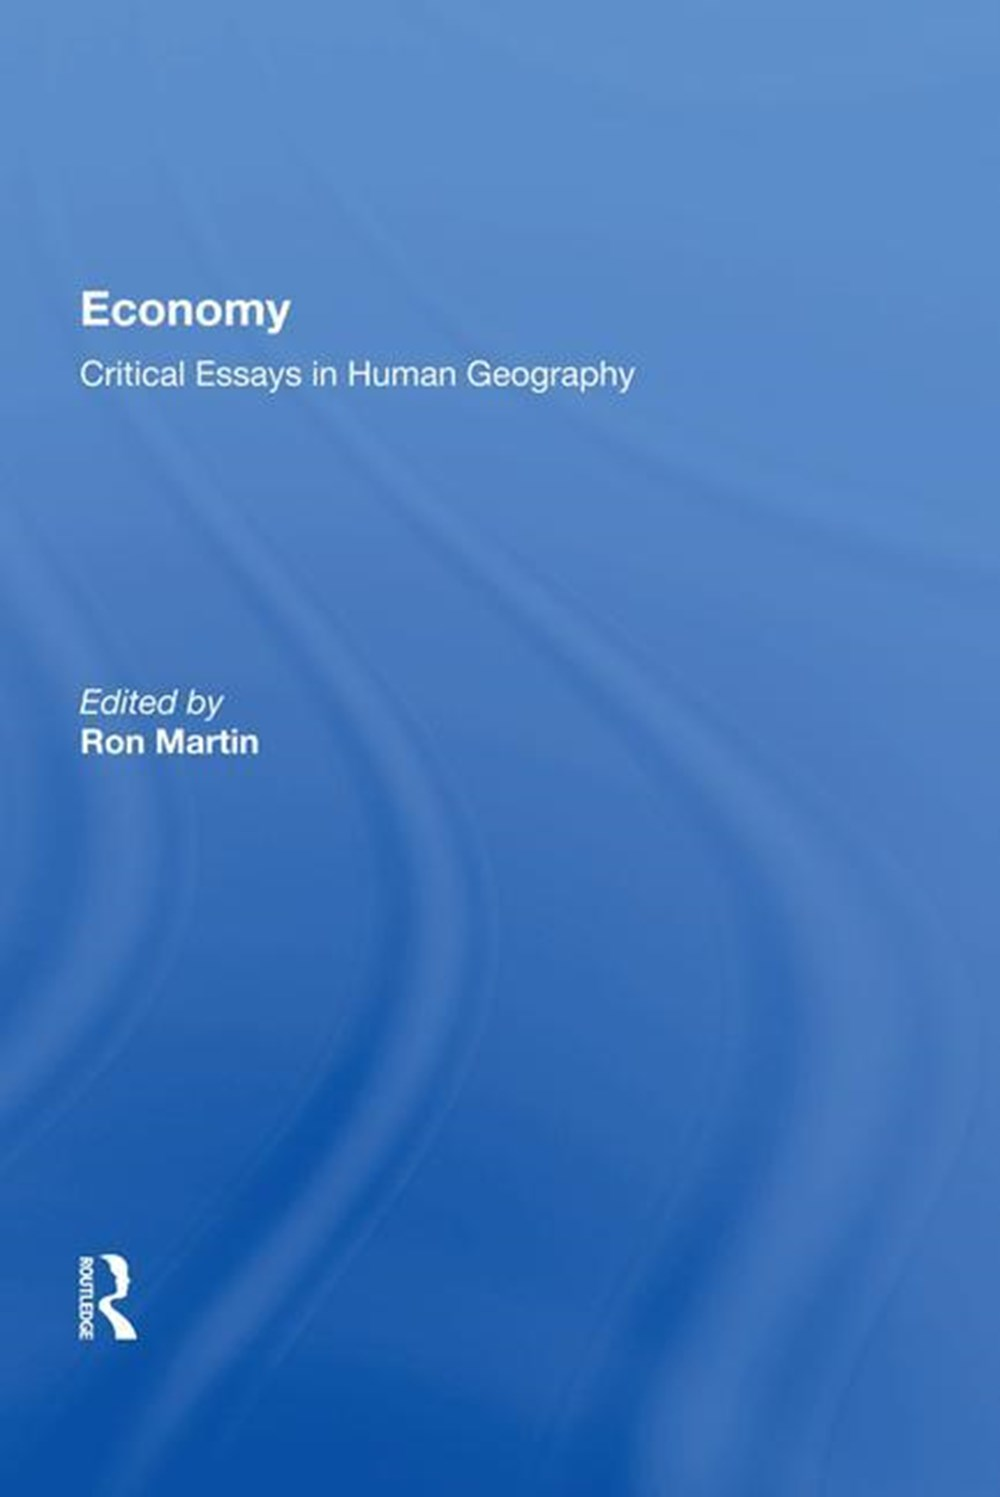 Economy Critical Essays in Human Geography